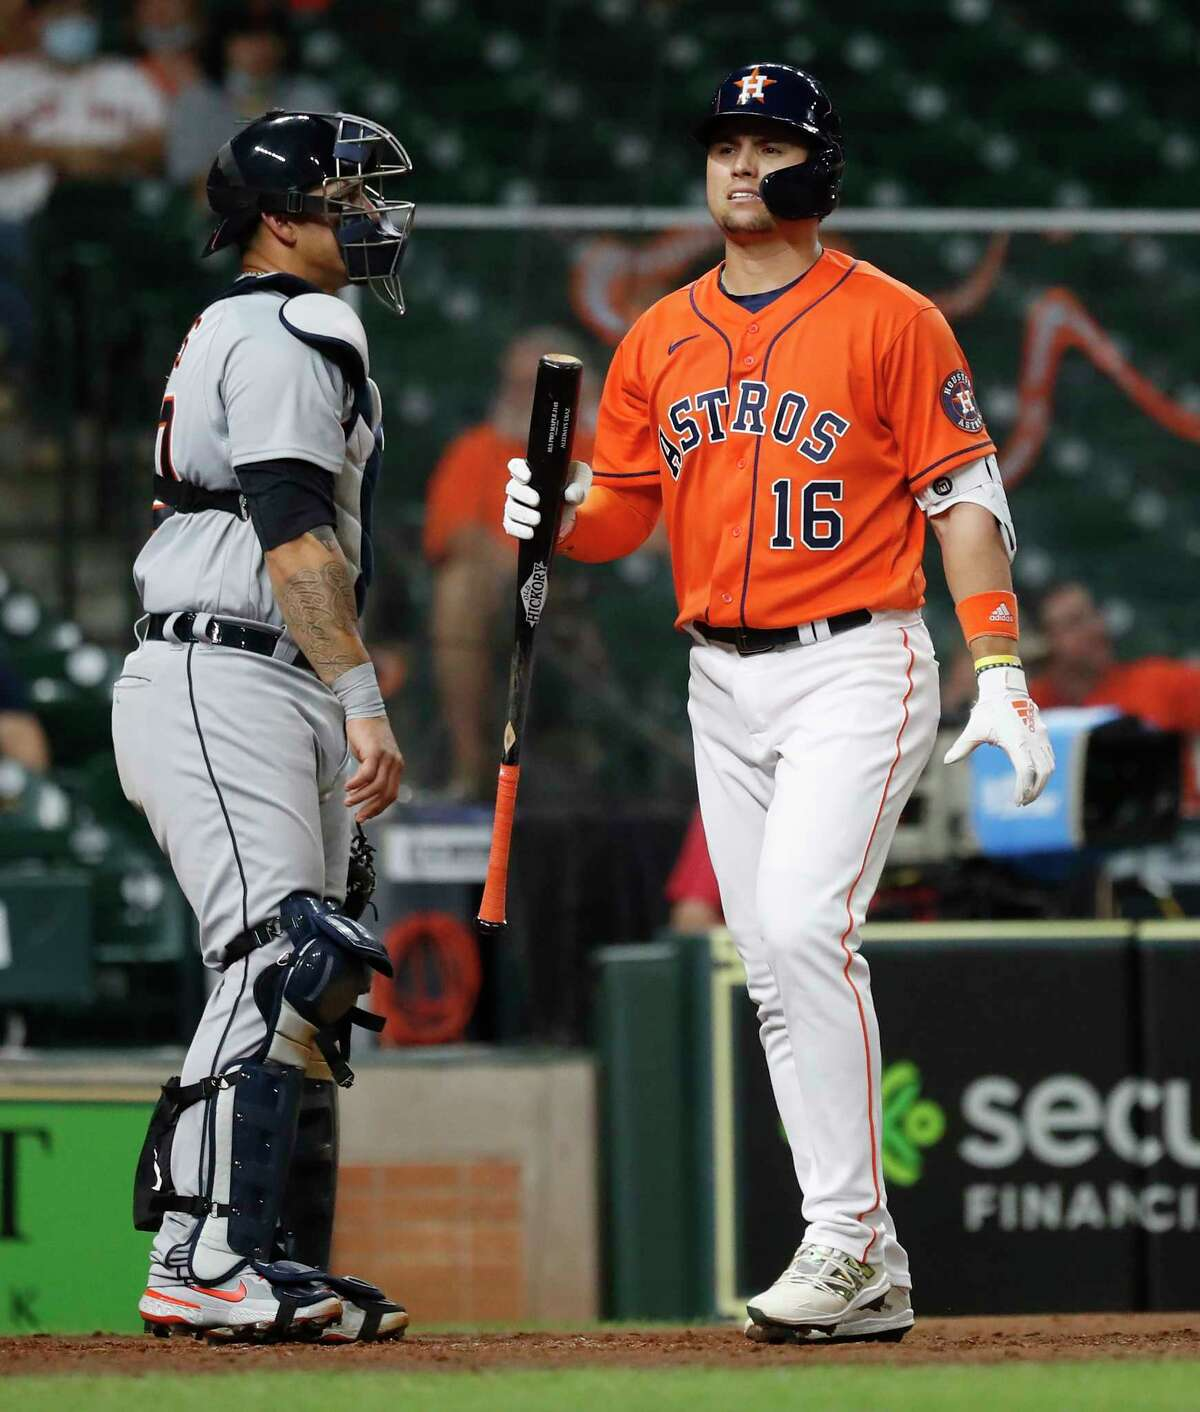 Houston Astros Aledmys Diaz (16) strikes out during the eighth inning of an MLB baseball game at Minute Maid Park, in Houston, Tuesday, April 13, 2021.